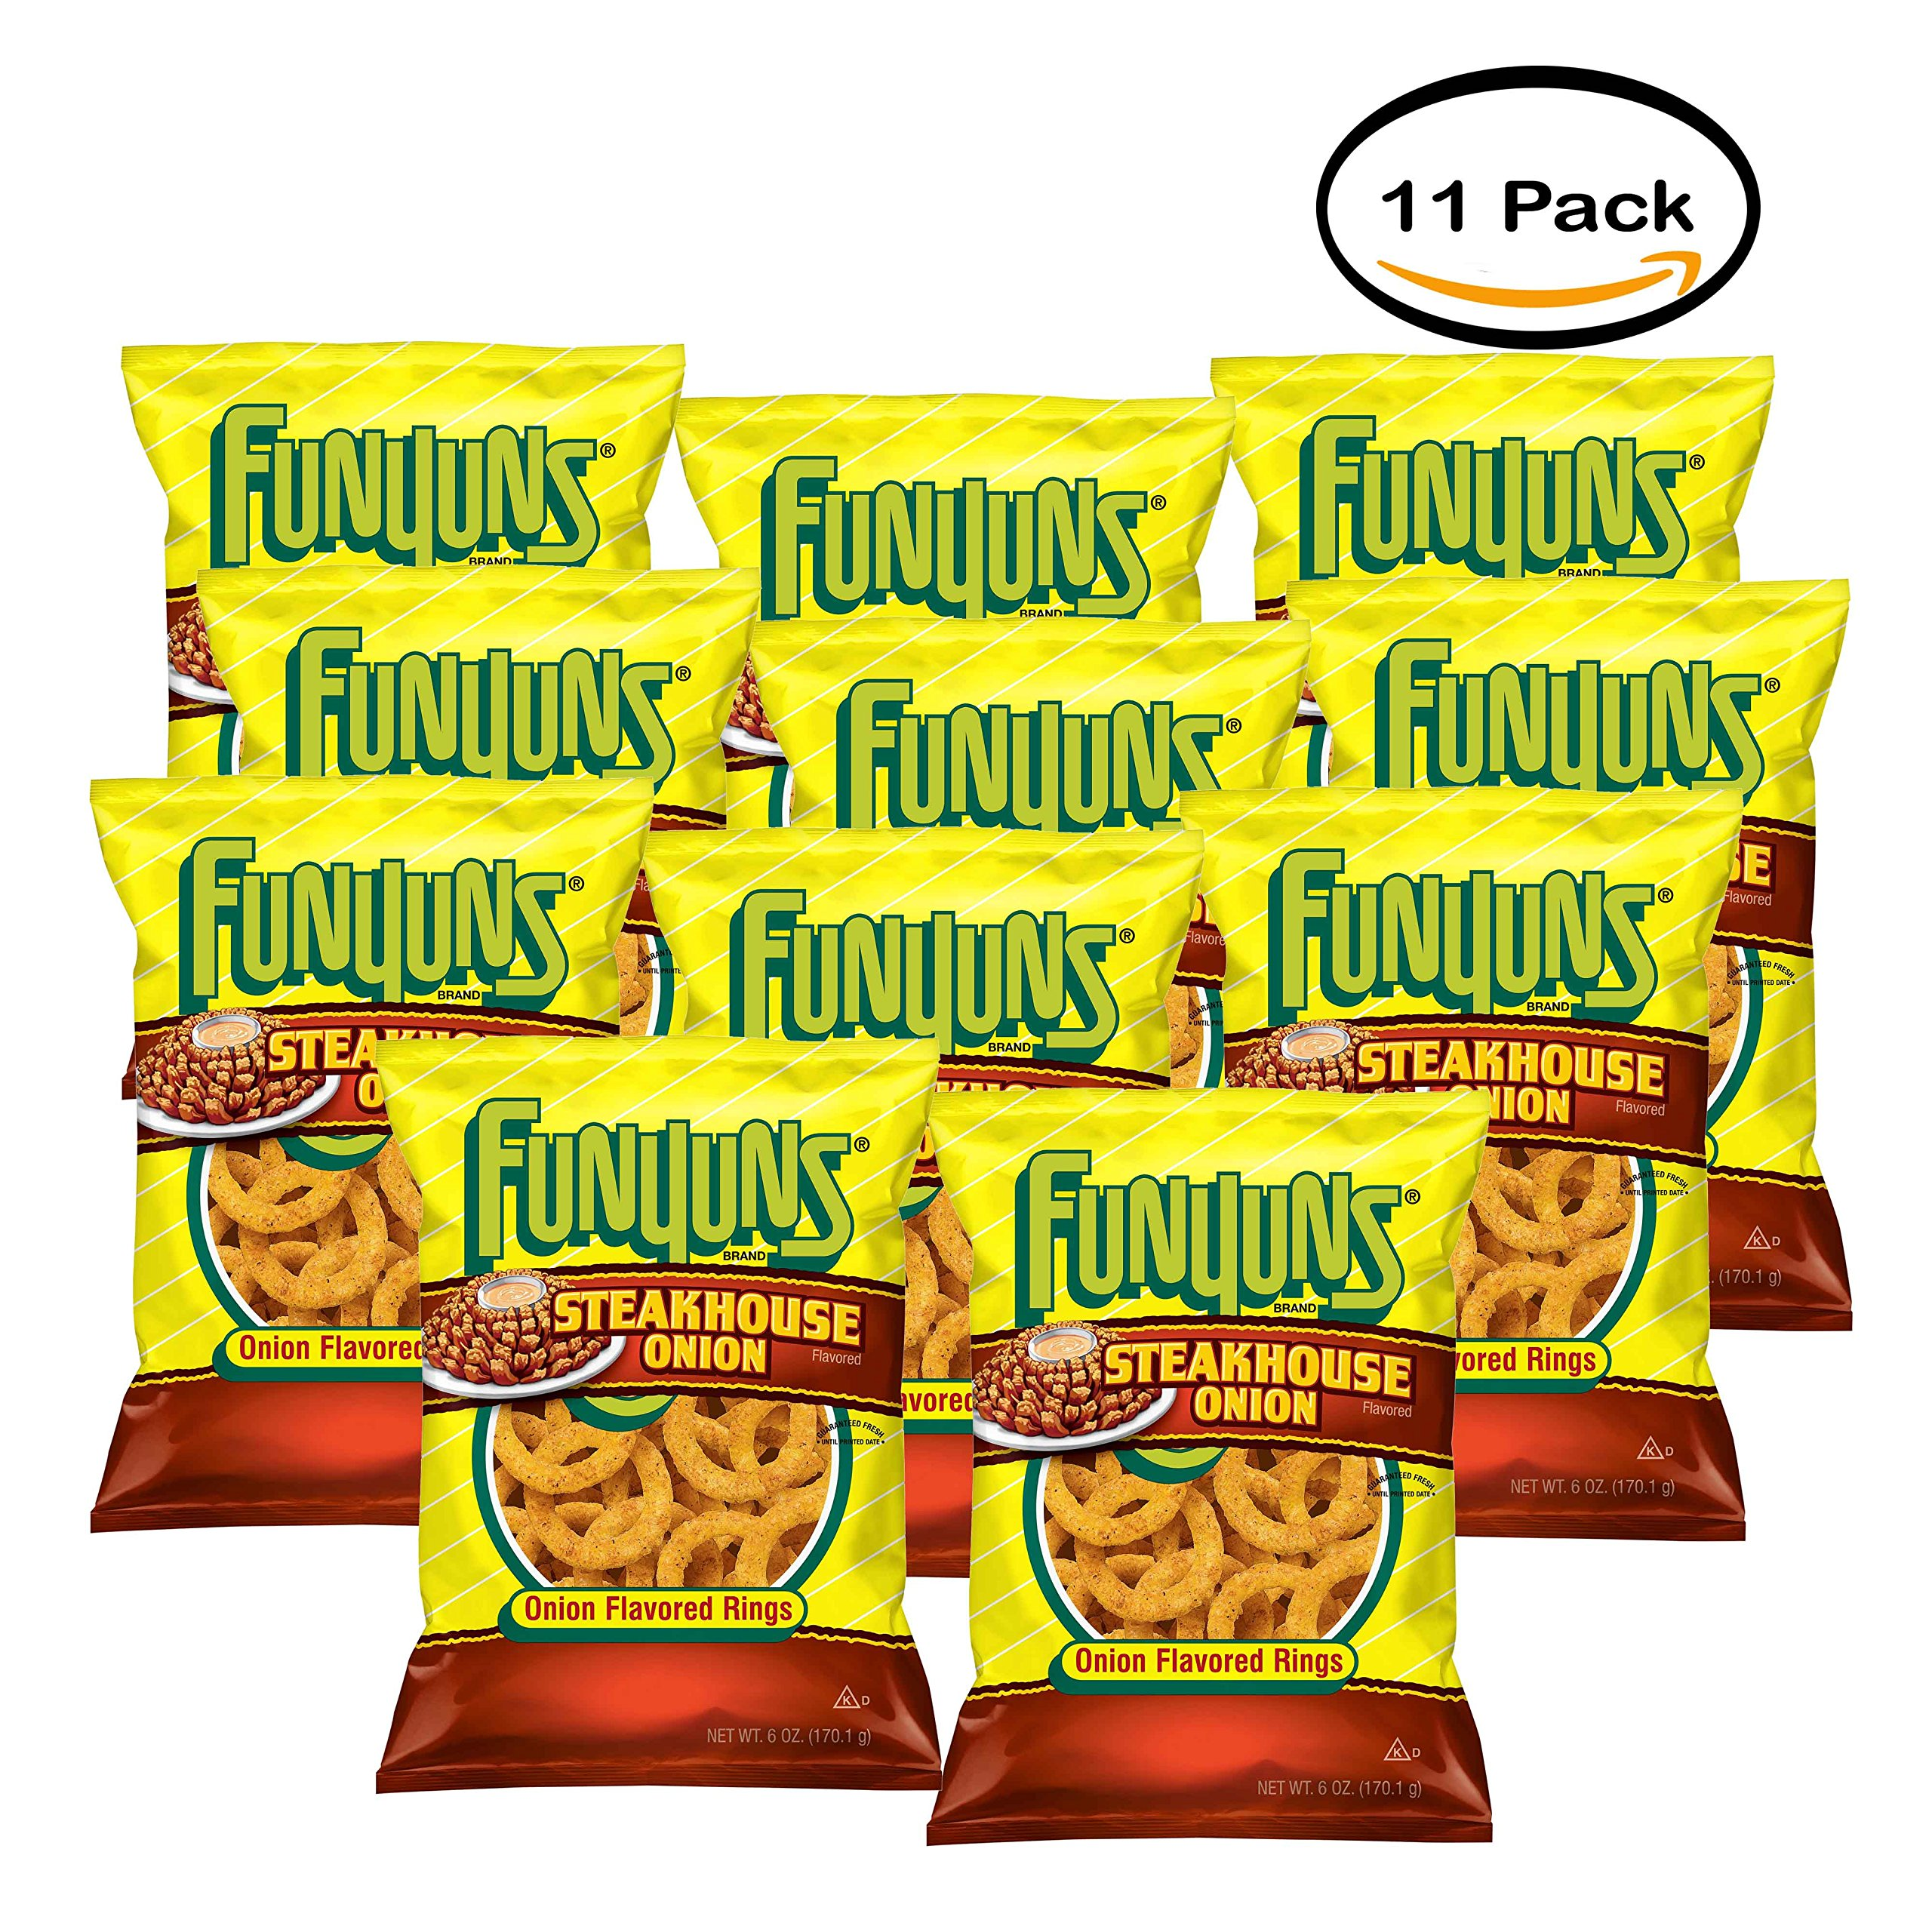 PACK OF 11 - Funyuns Steakhouse Onion Onion Flavored Rings 6 oz. Bag by Funyuns